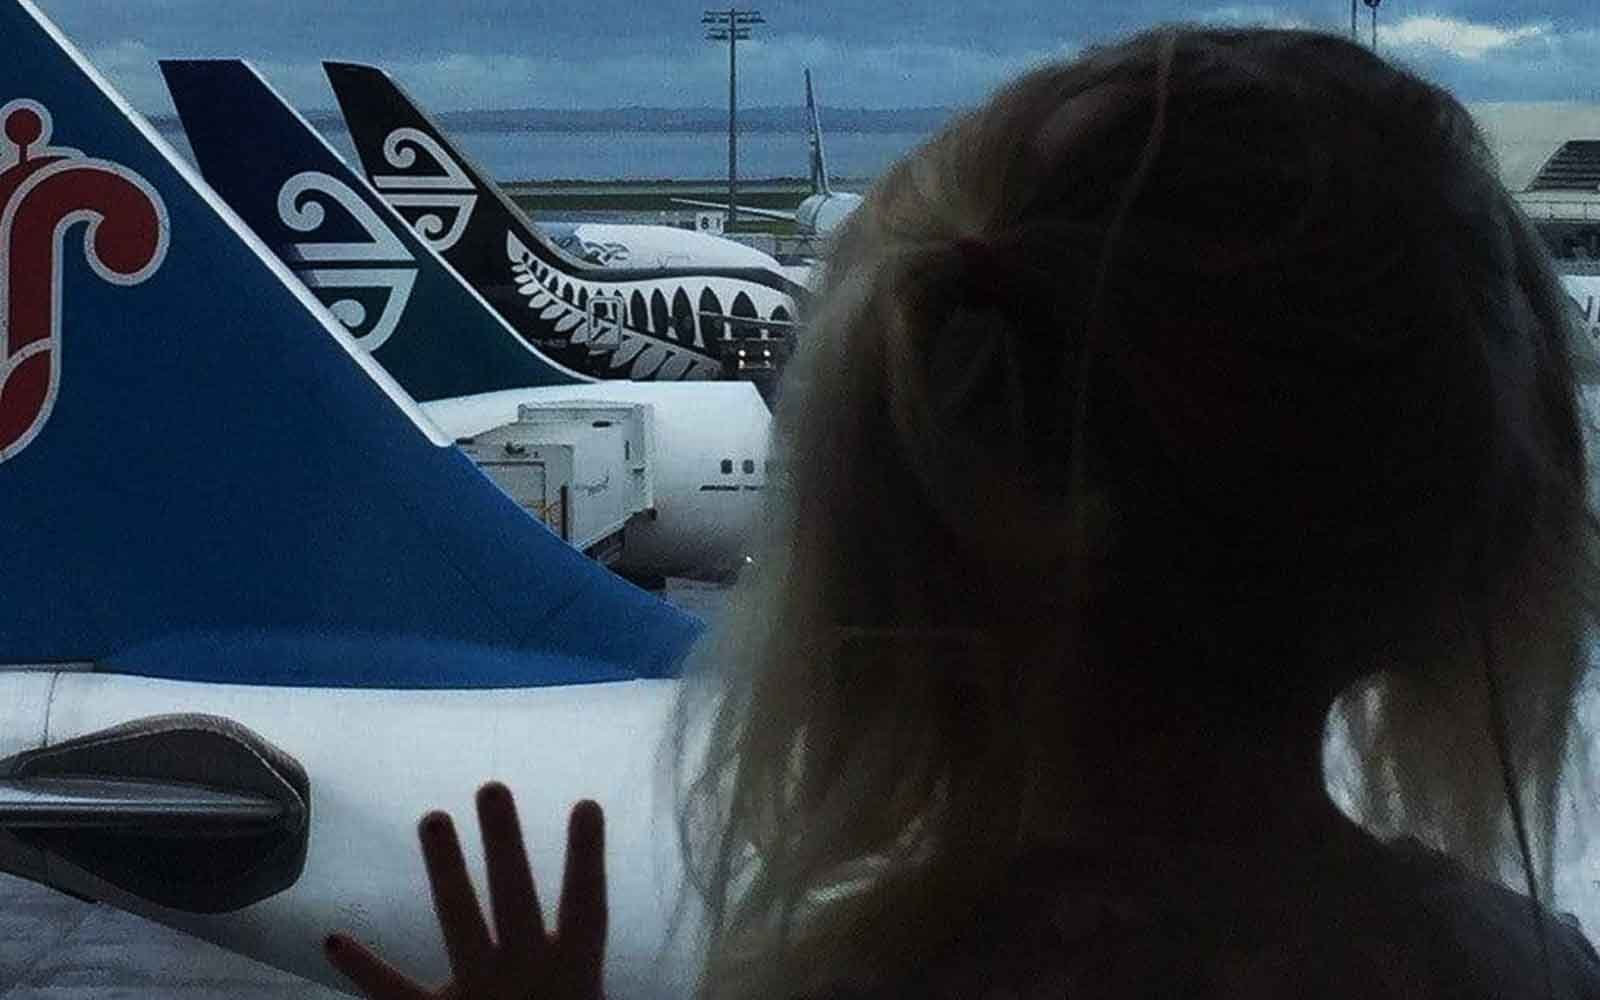 Surviving air travel with your little ones